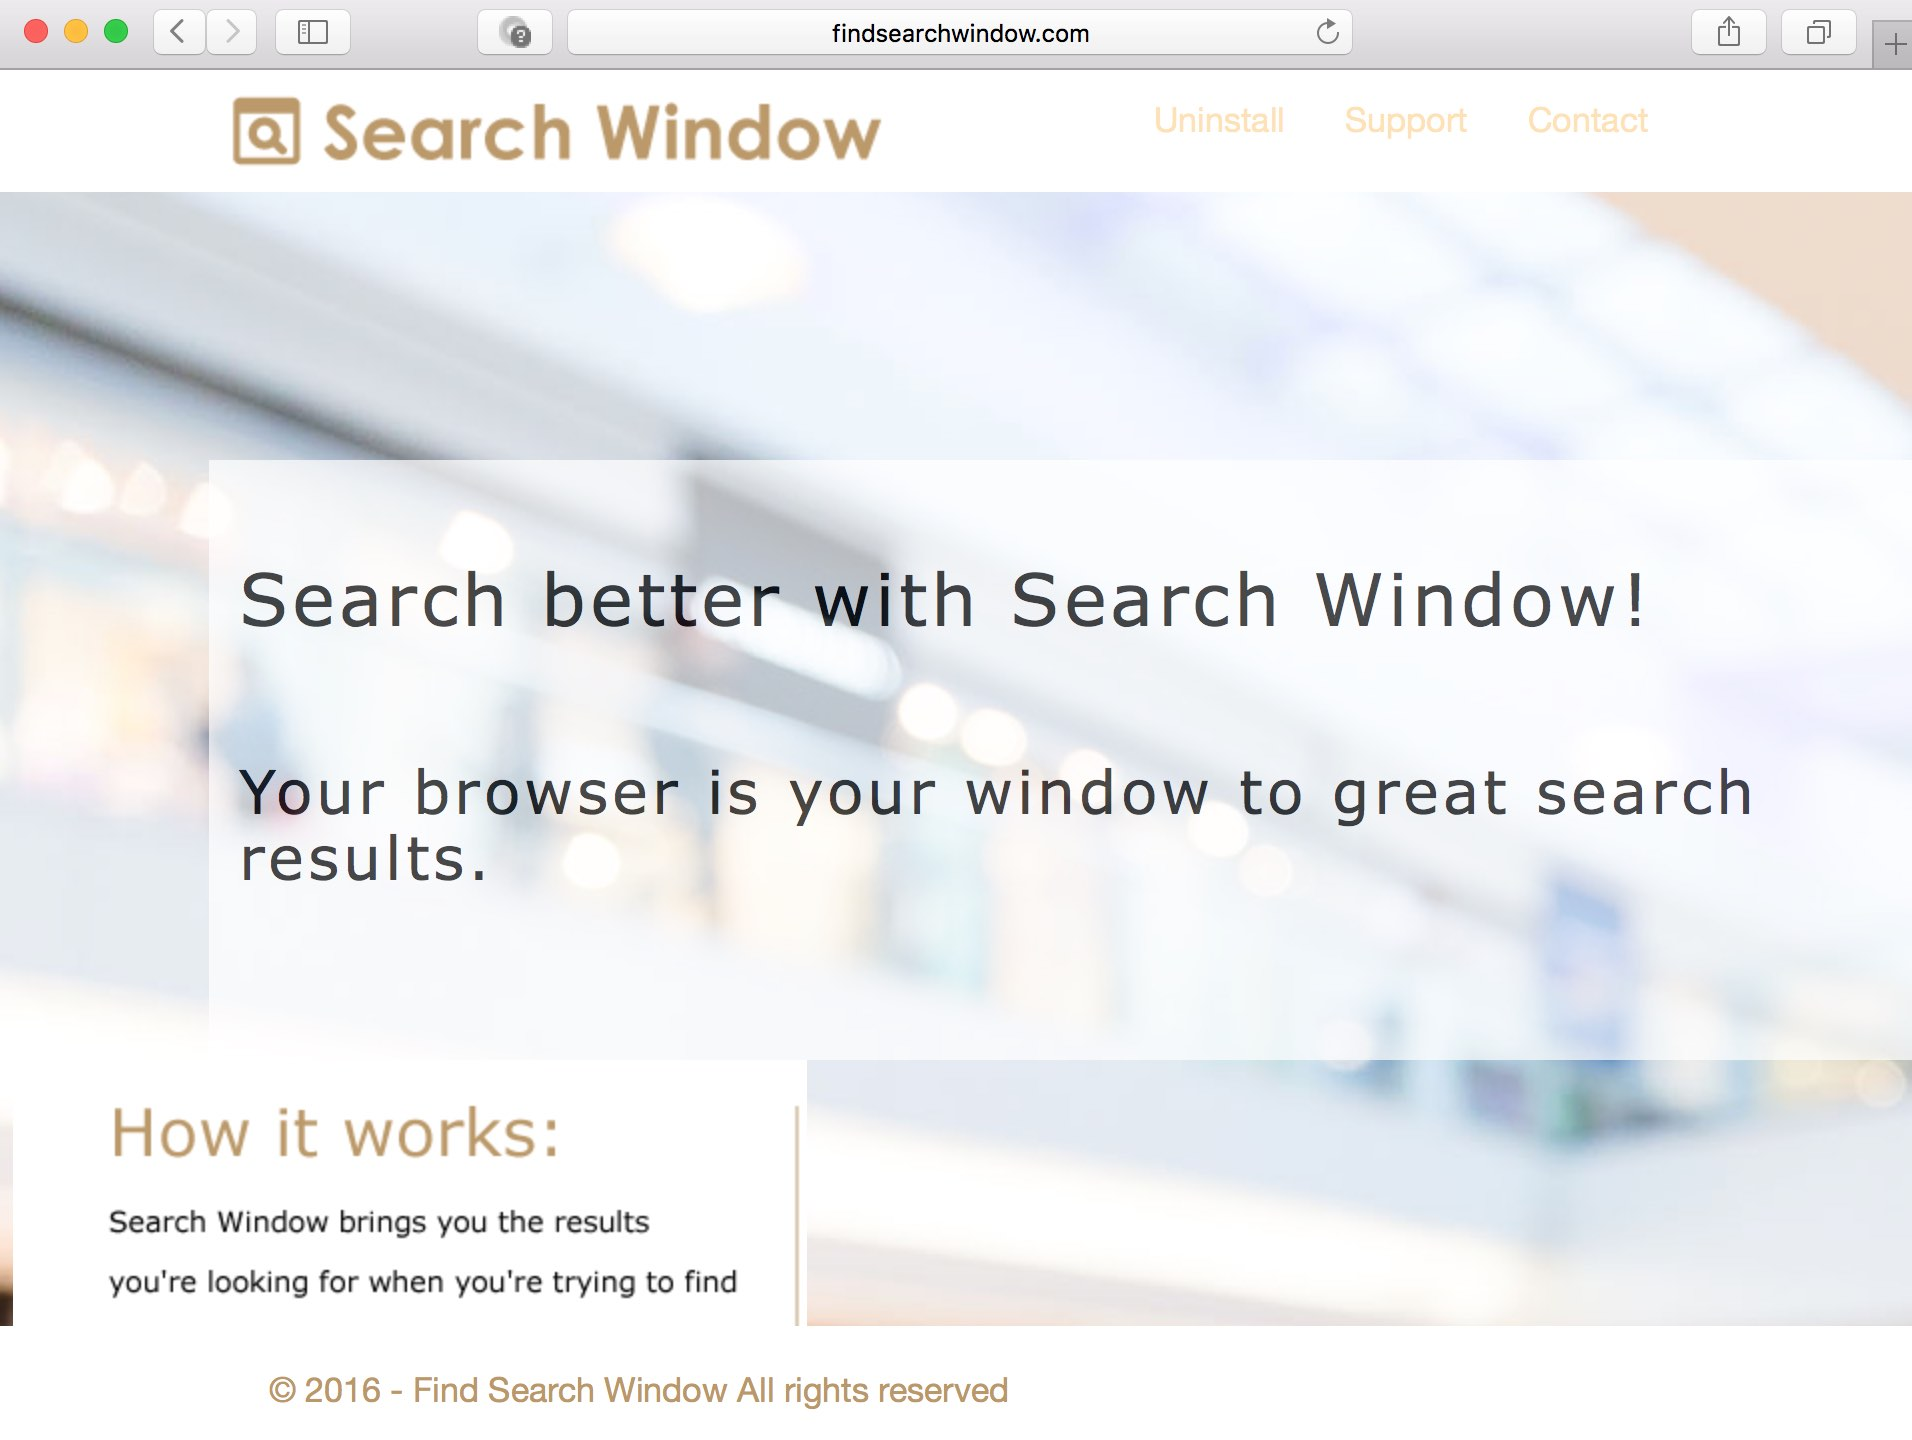 Find Search Window Ads